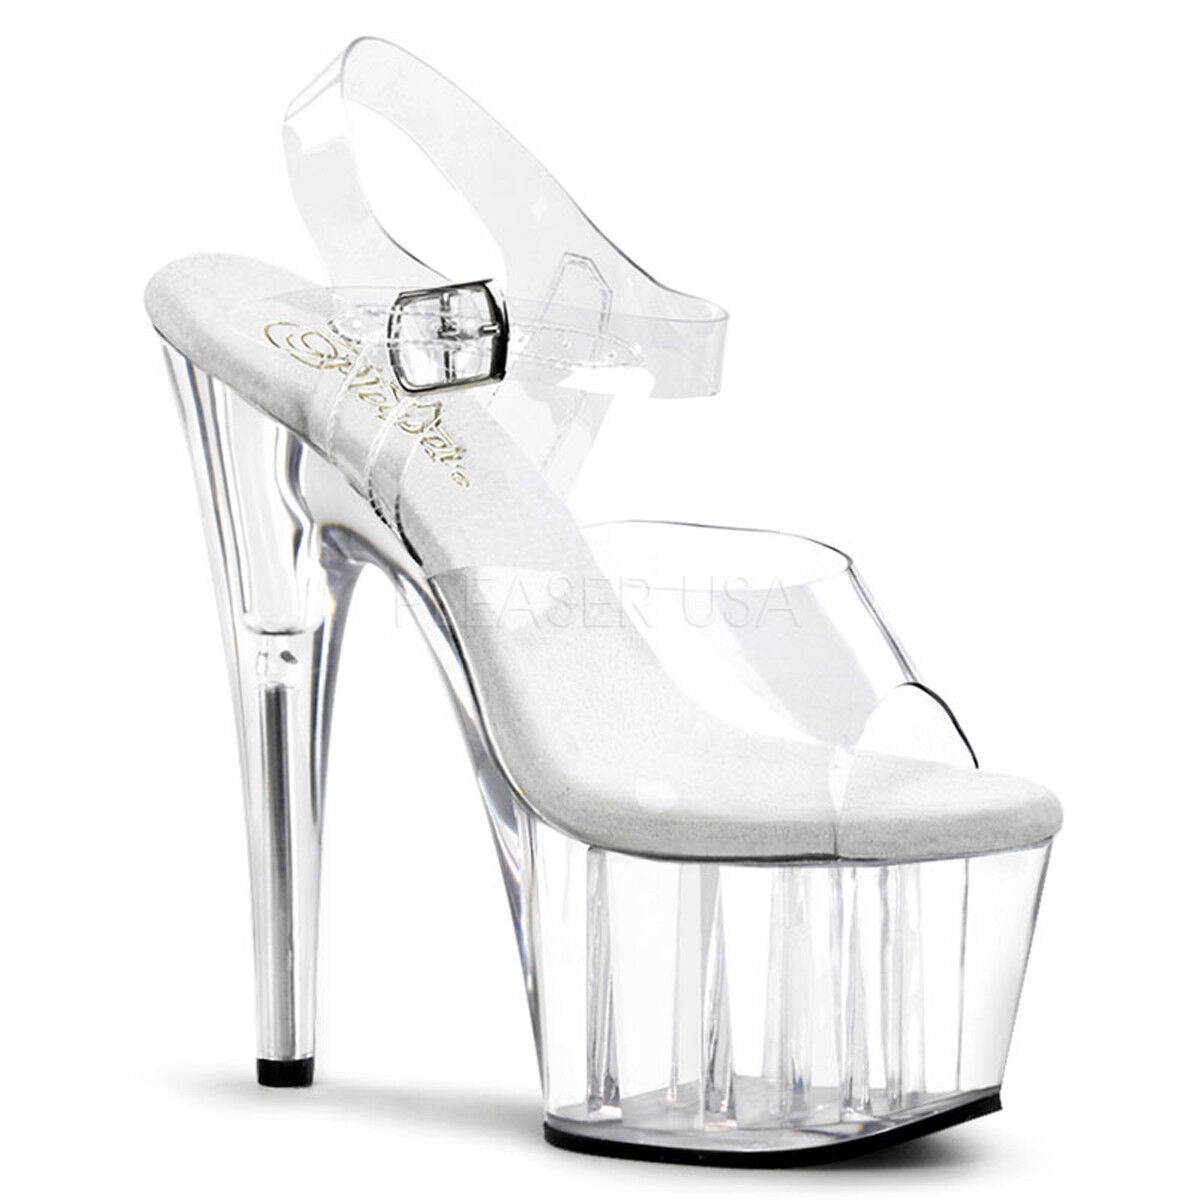 7  Clear Platform Basic Stripper Heels Exotic Exotic Exotic Pole Dance Fitness schuhe Adore-708 dd5420